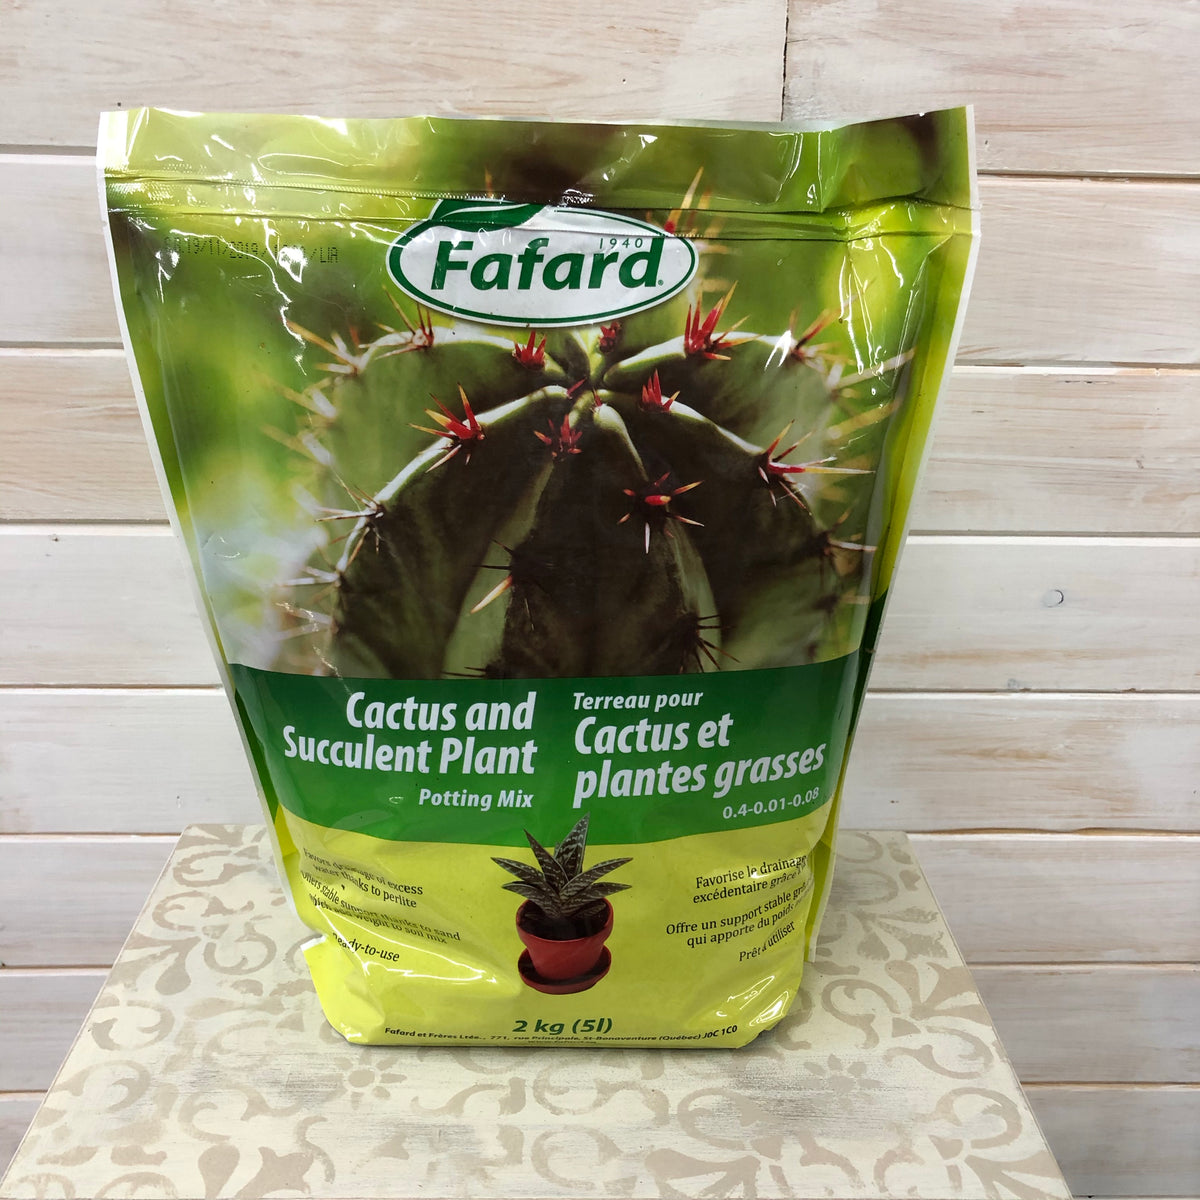 Fafard Cactus and Succulent Potting Mix